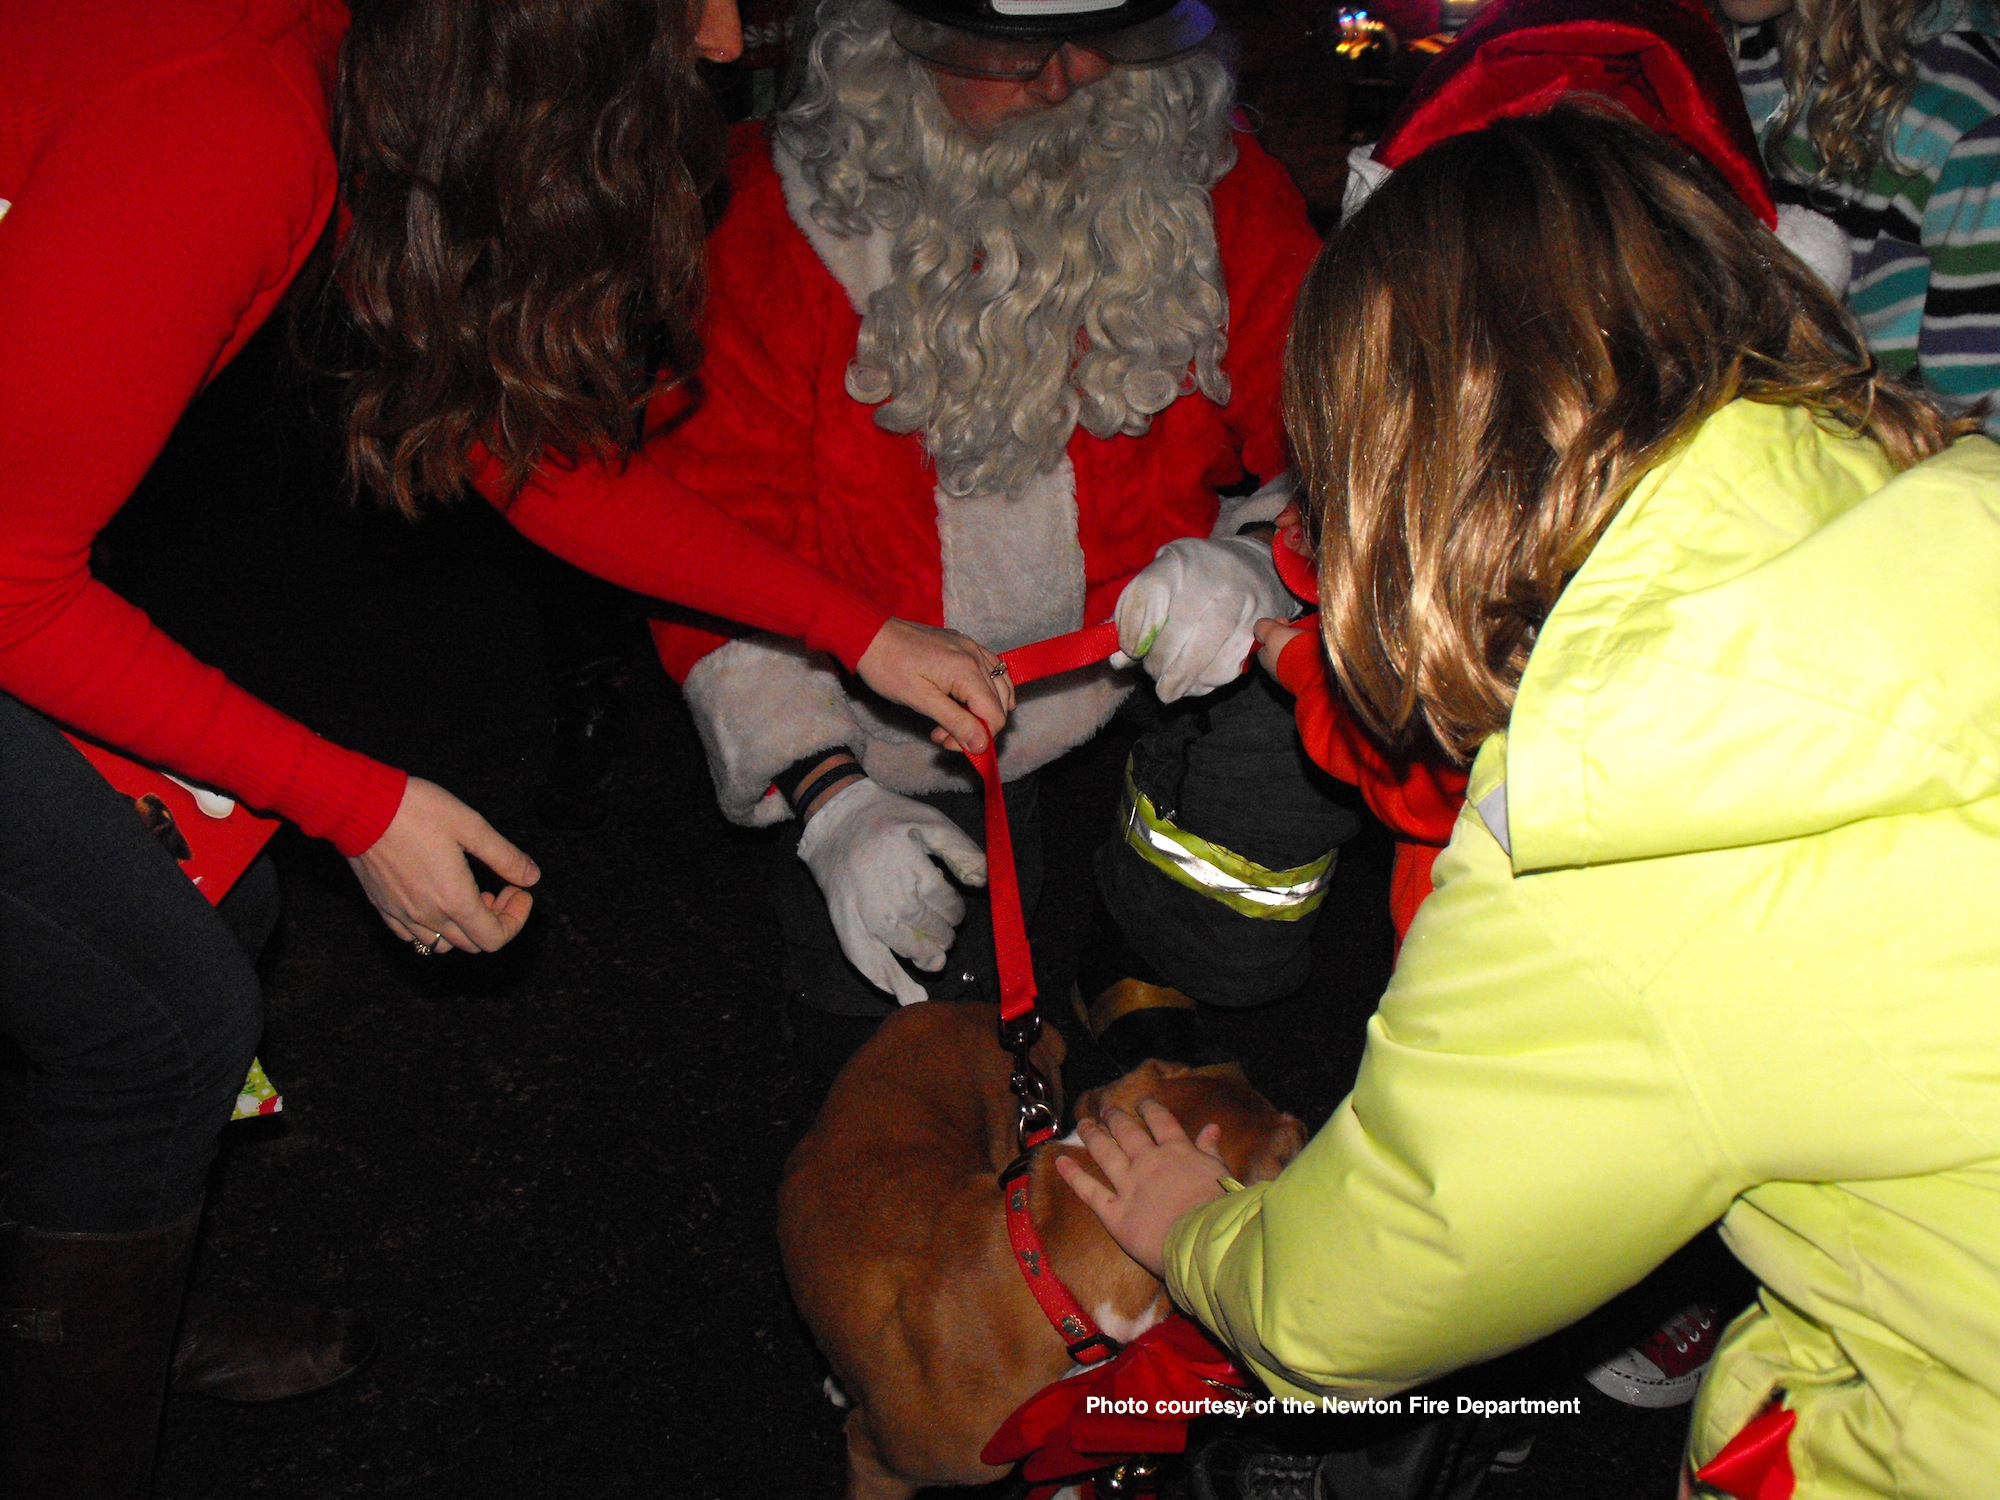 A boxer puppy being delivered by Santa to its new home. Photo courtesy of the Newton Fire Department.